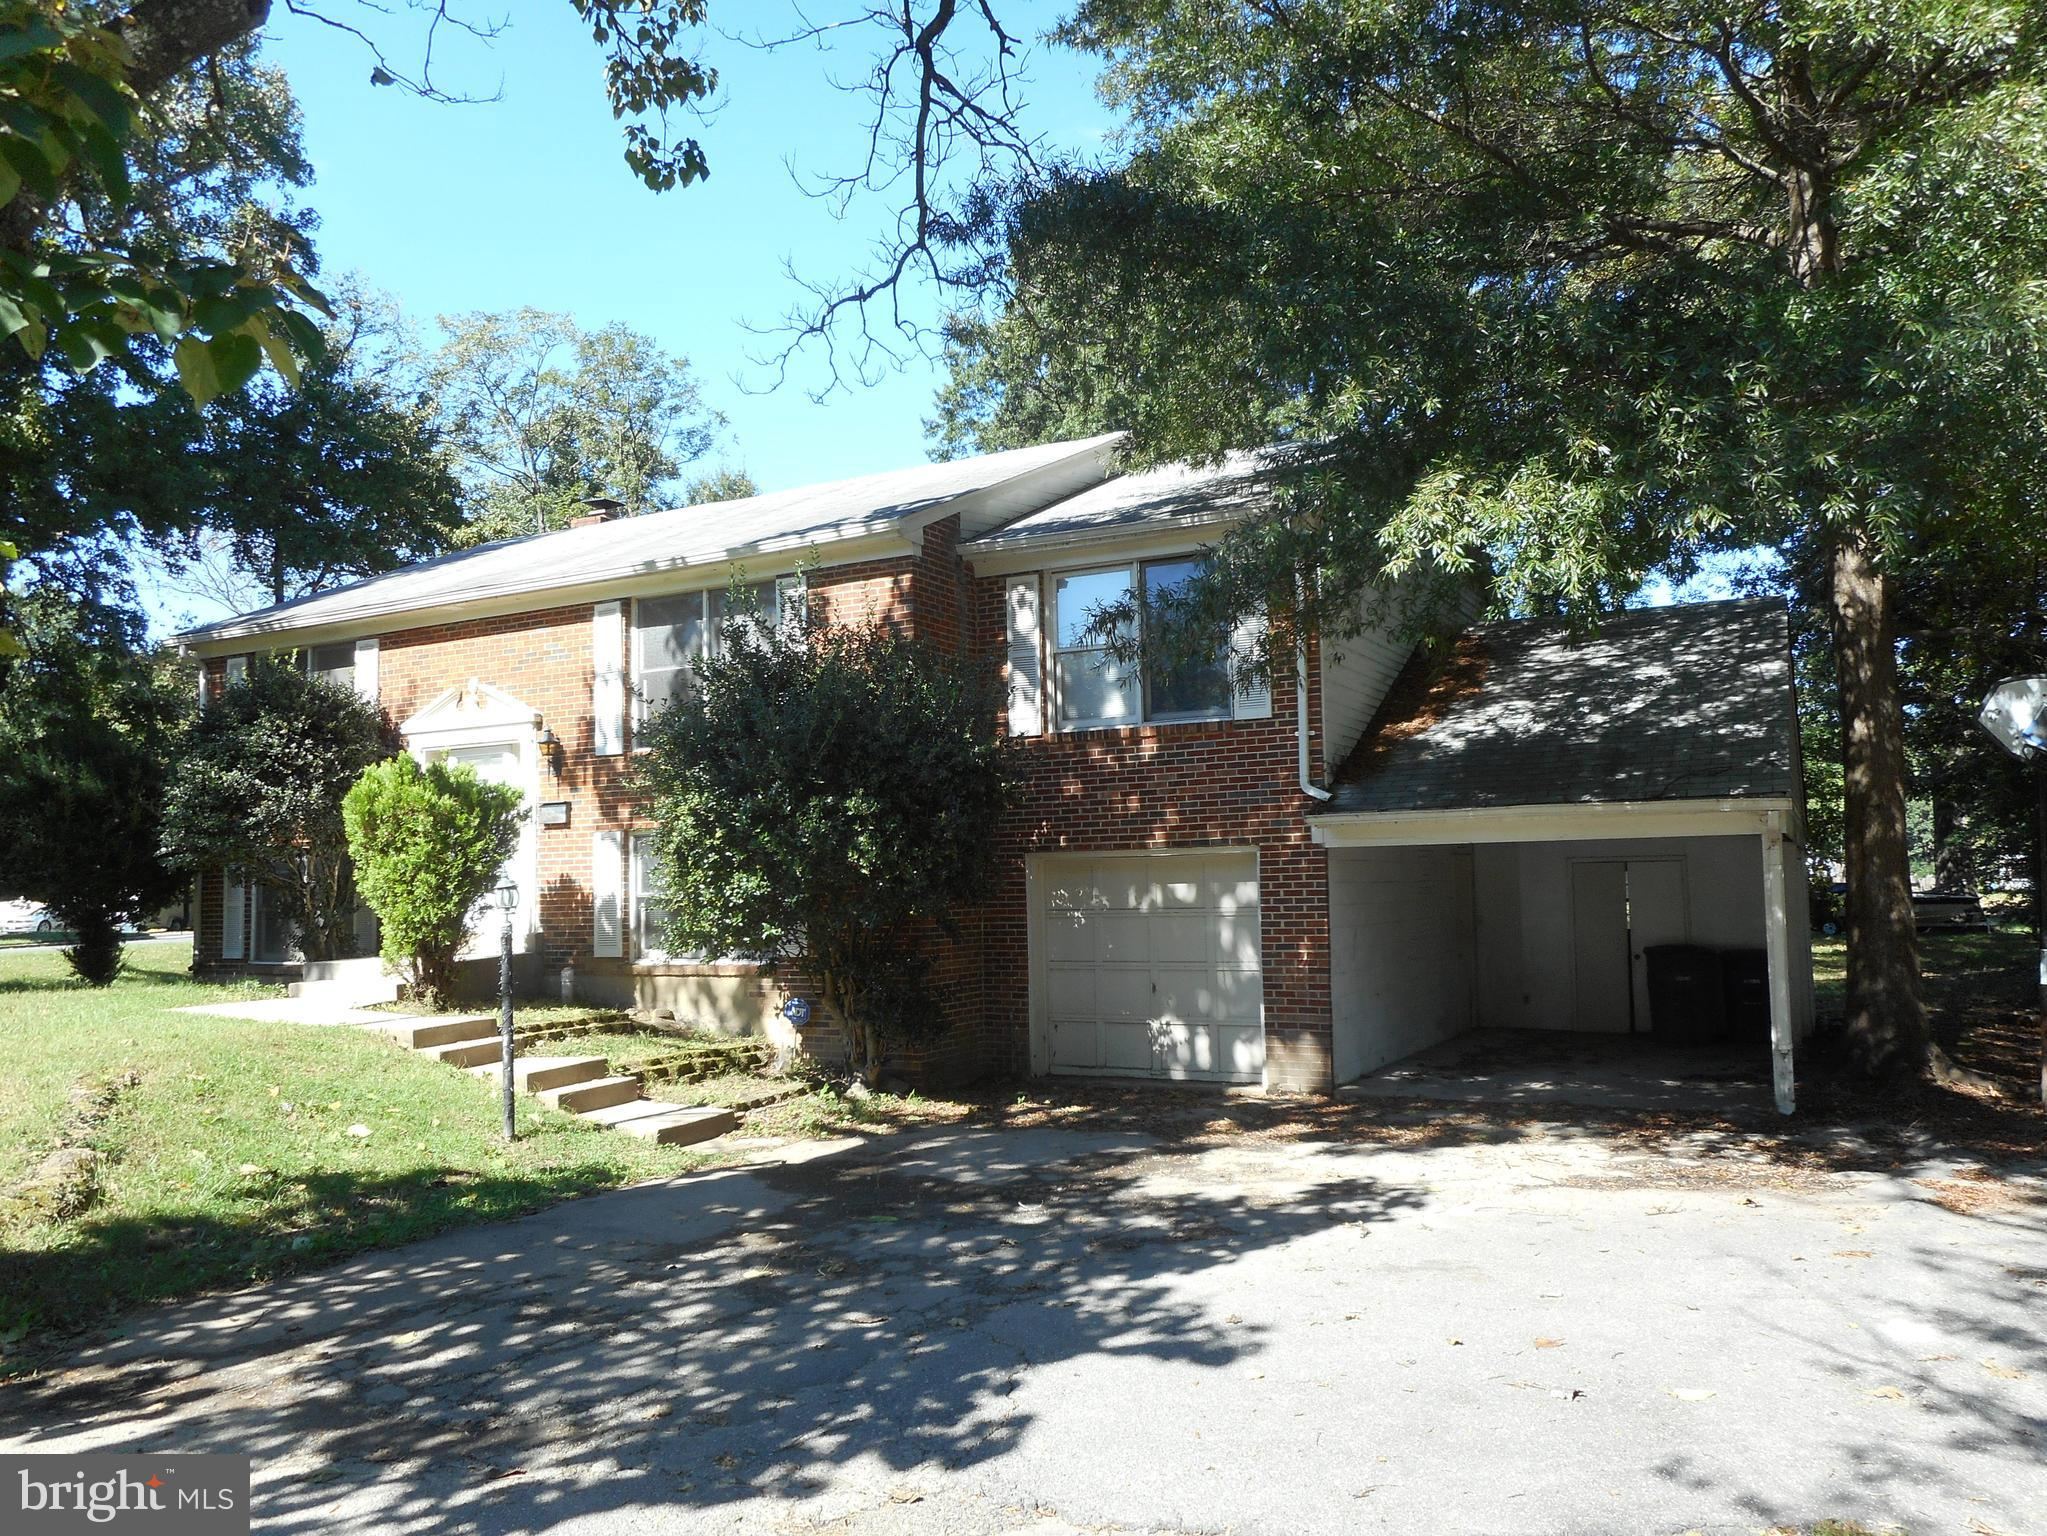 Single Family Home on a half acre corner level lot!!! This 5 BR 3 full bath has been freshly painted and ready for tenants. Large deck on the back overlooks the tire swing in the back yard. Built in cabinets in the dining room and full size washer/dryer. Great location! Close to local commuter routes, shopping and schools. Walking distance to Lee District Park.